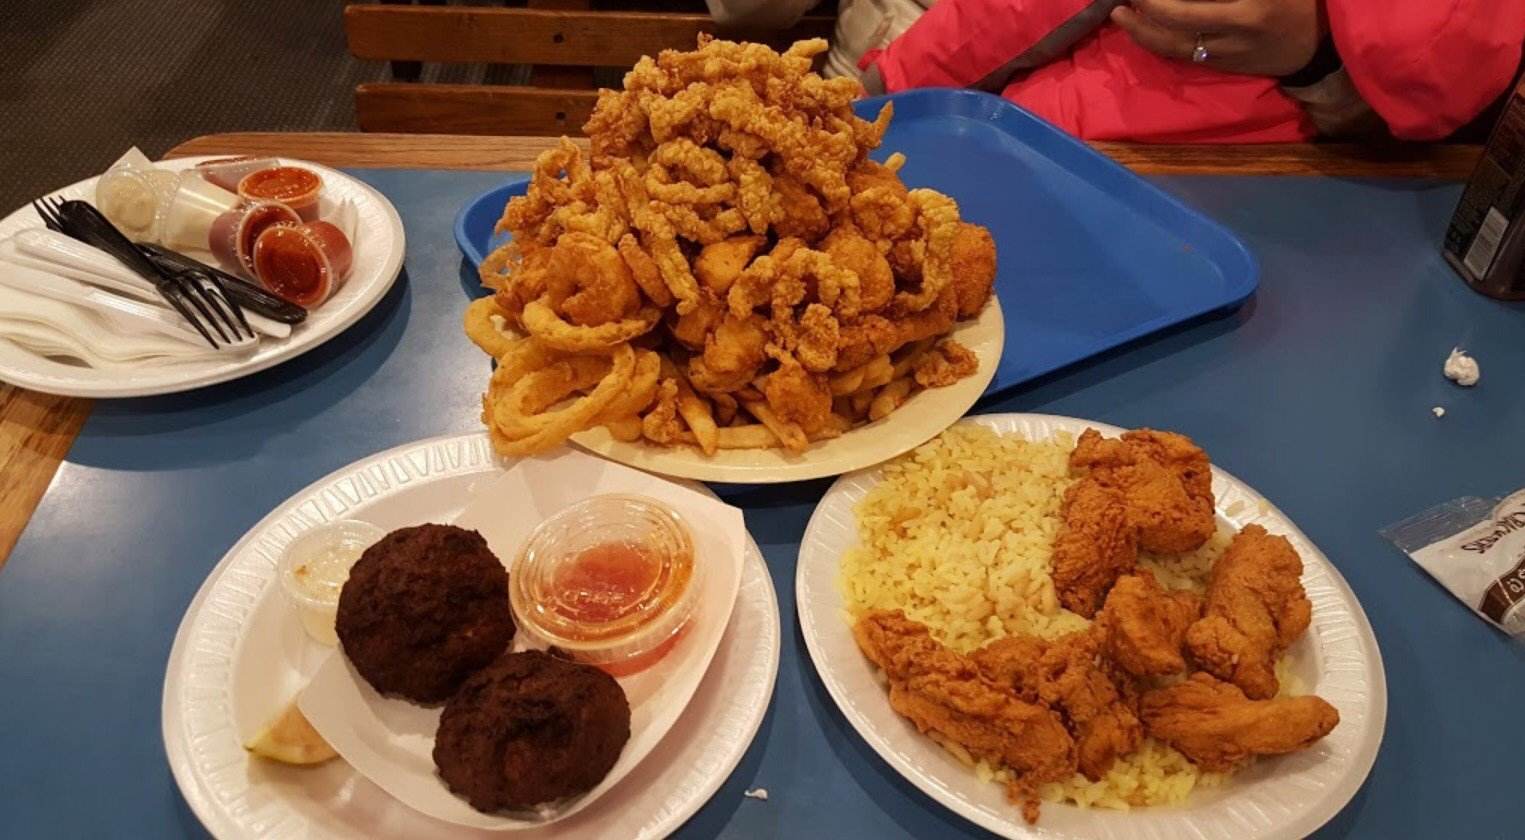 Fried seafood dishes